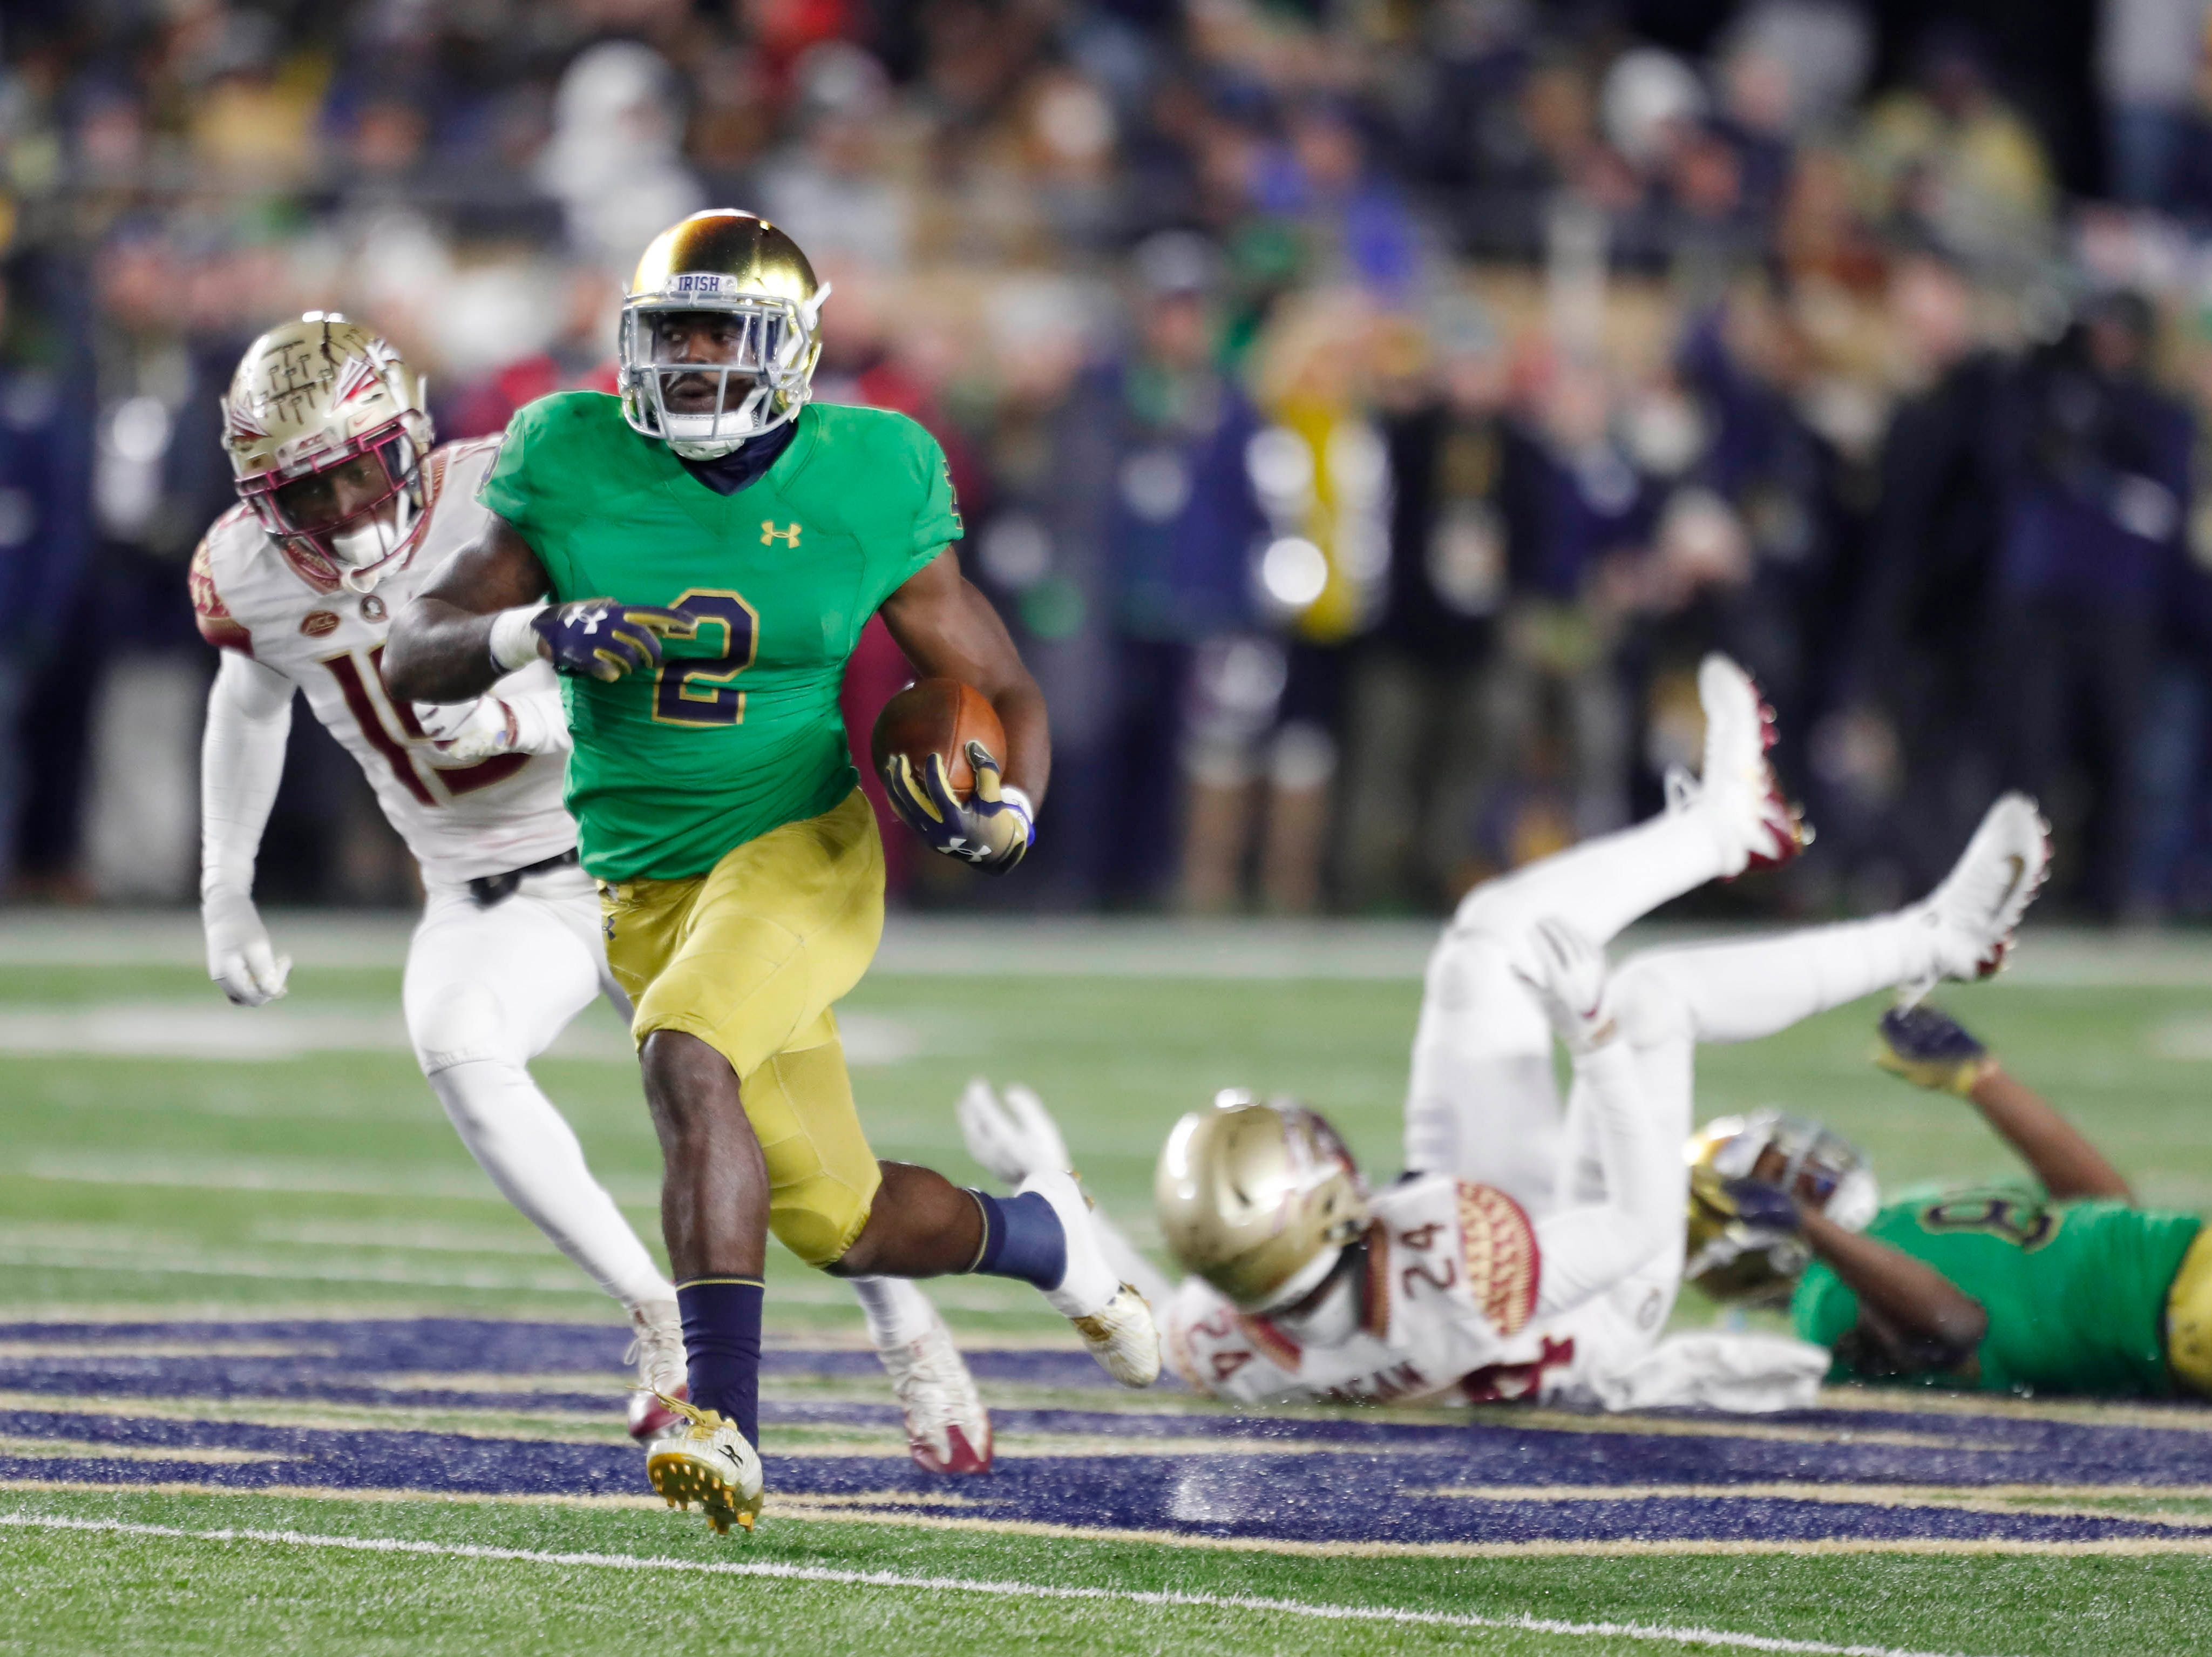 Nov 10, 2018; South Bend, IN, USA; Notre Dame Fighting Irish running back Dexter Williams (2) scores on a 58 yard touchdown run against the Florida State Seminoles during the second quarter at Notre Dame Stadium. Mandatory Credit: Brian Spurlock-USA TODAY Sports